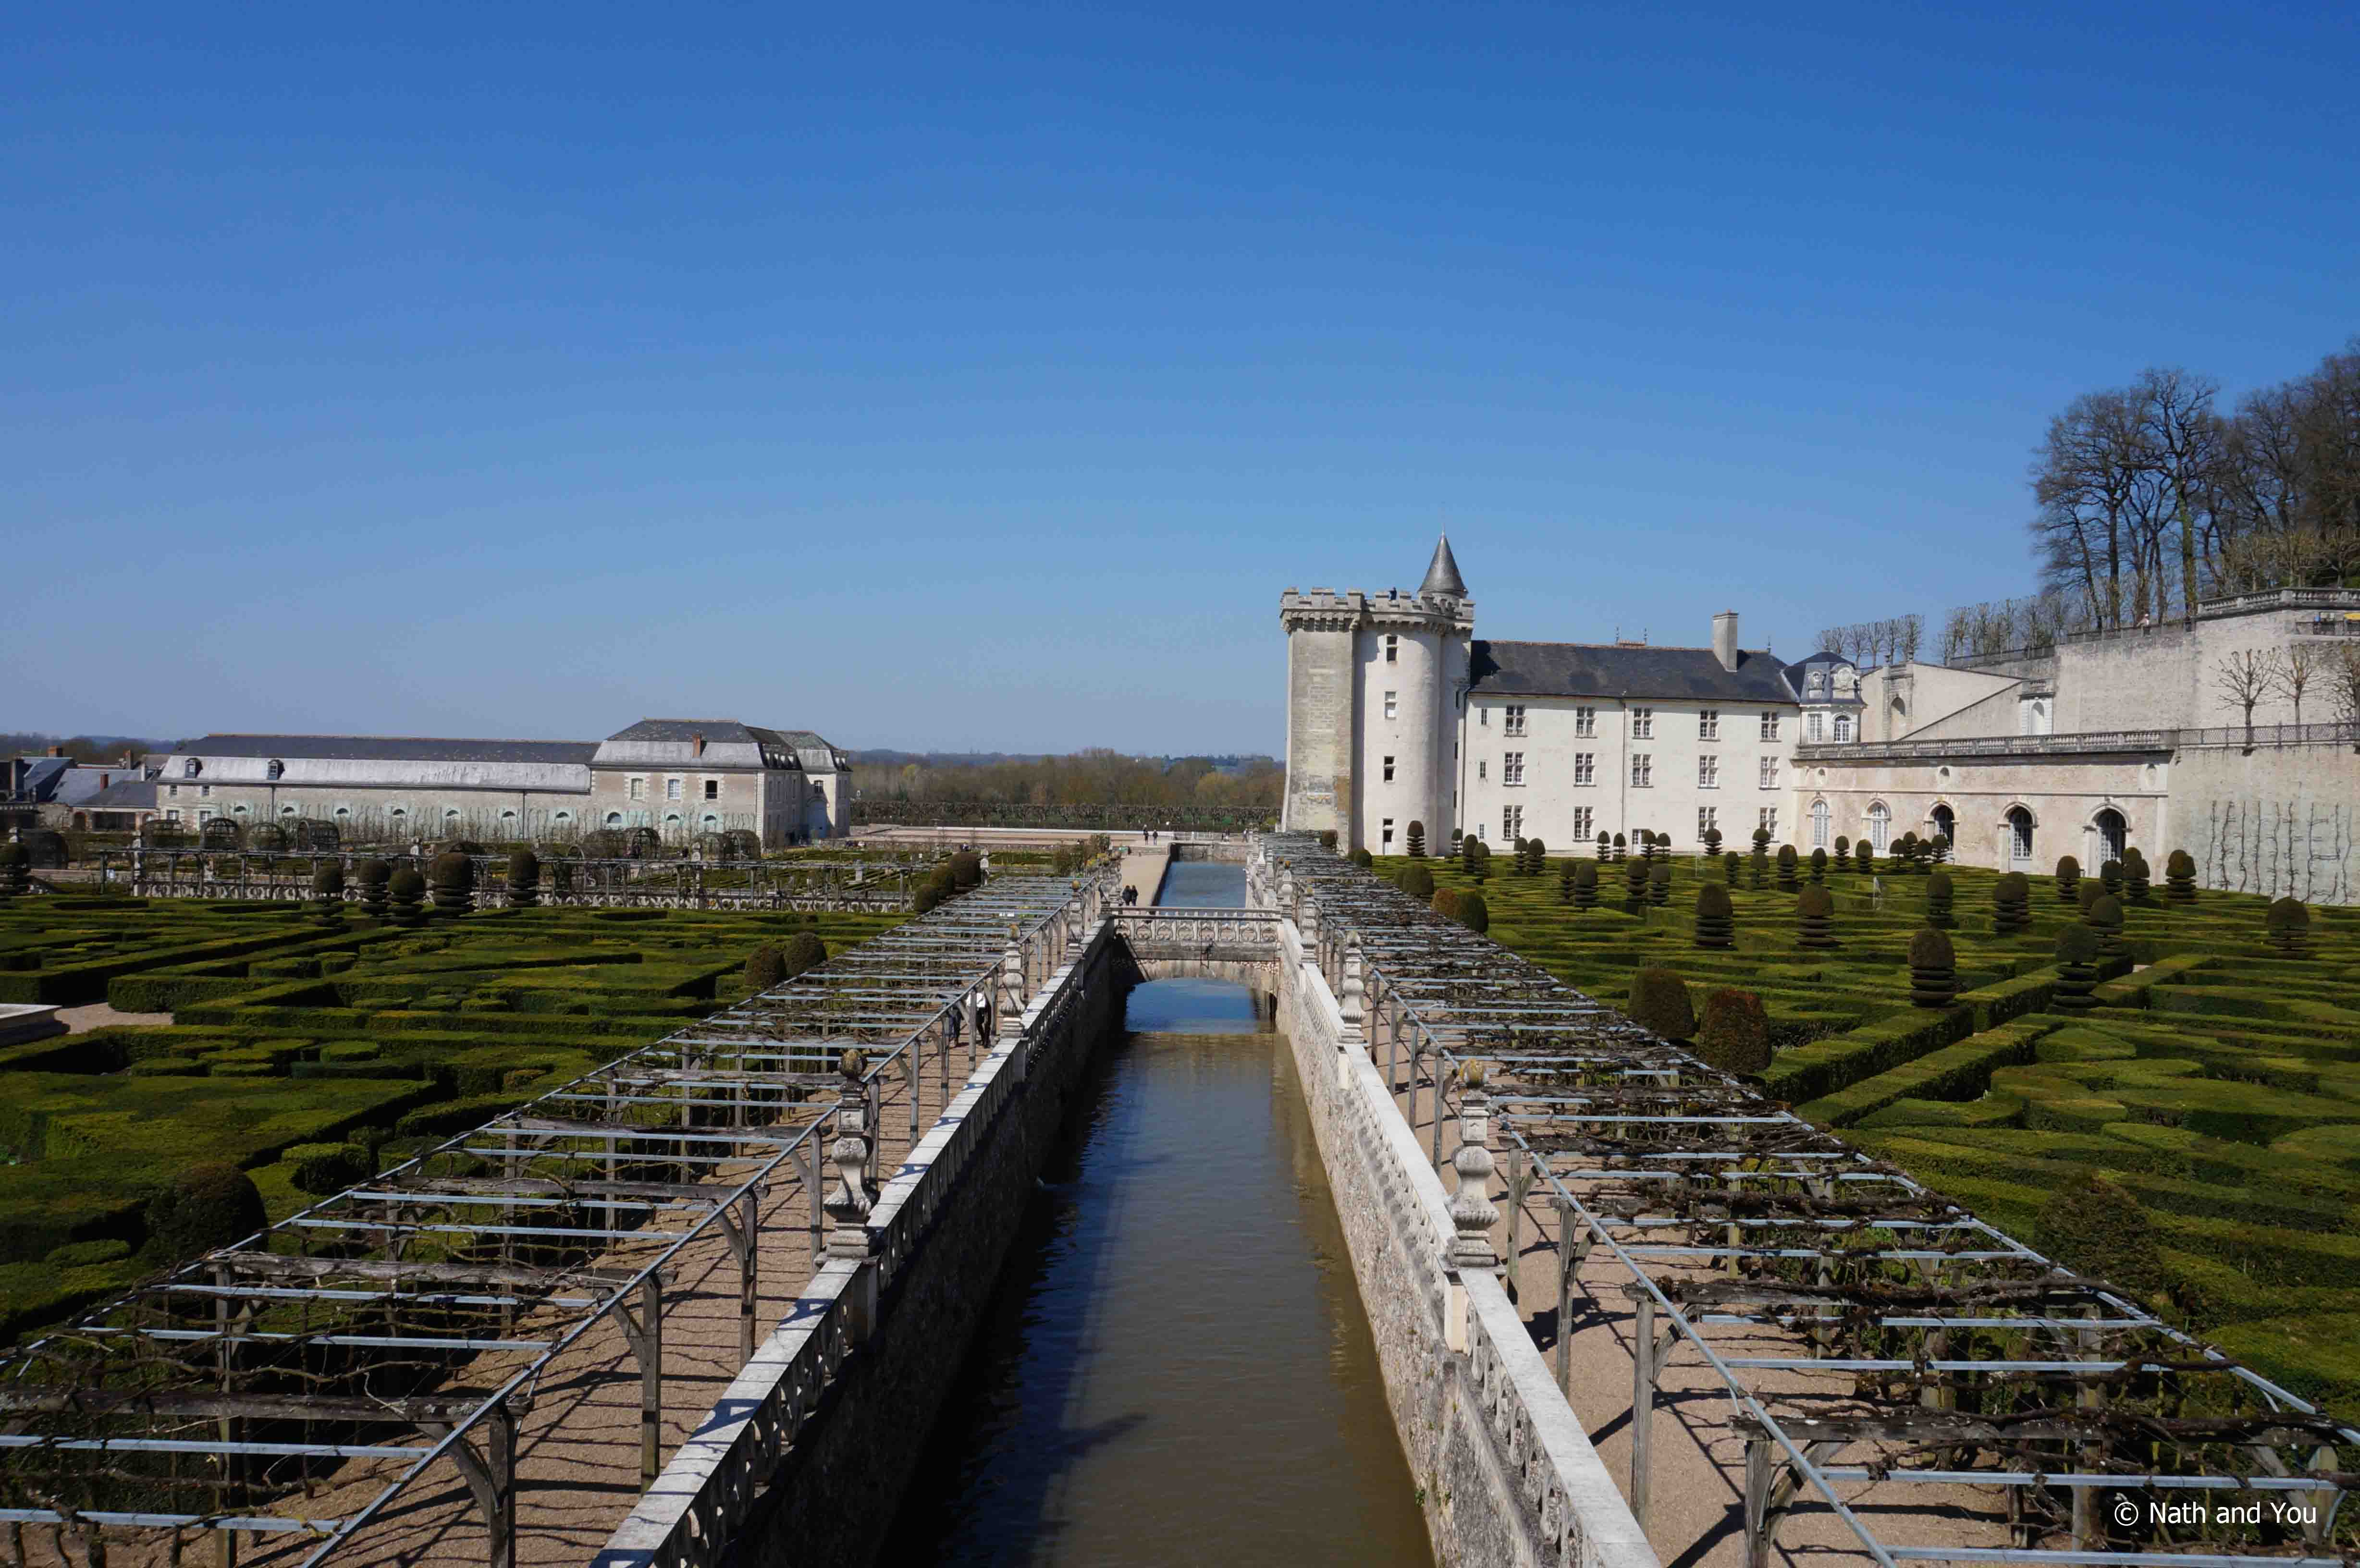 Villandry-8-Chateaux-Loire-Nath-and-you